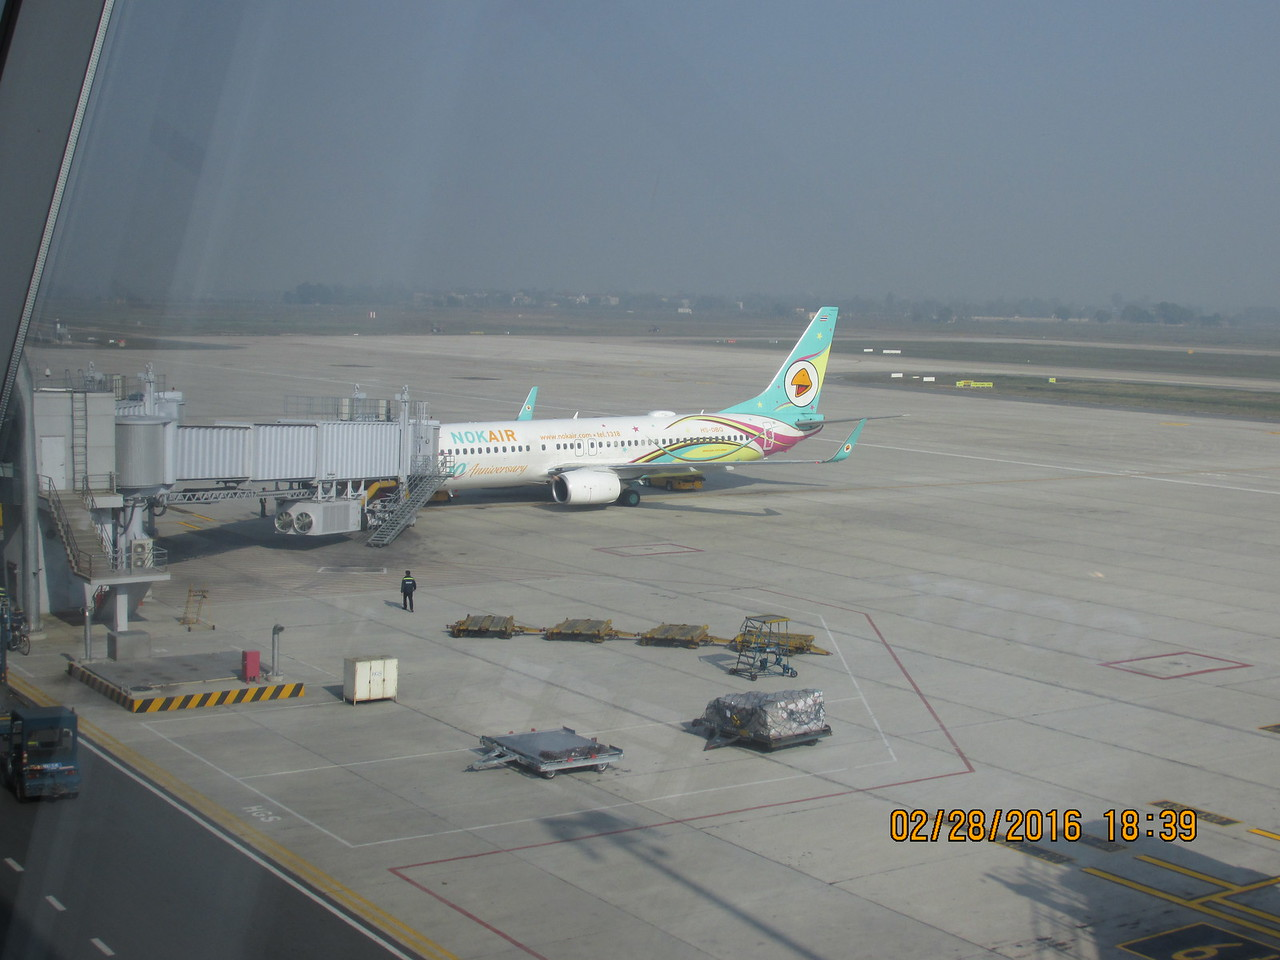 0097 - Nokair Airplane from Thailand at Hanoi Airport - Hanoi Vietnam - Date Correct but Time on Pic is Wrong